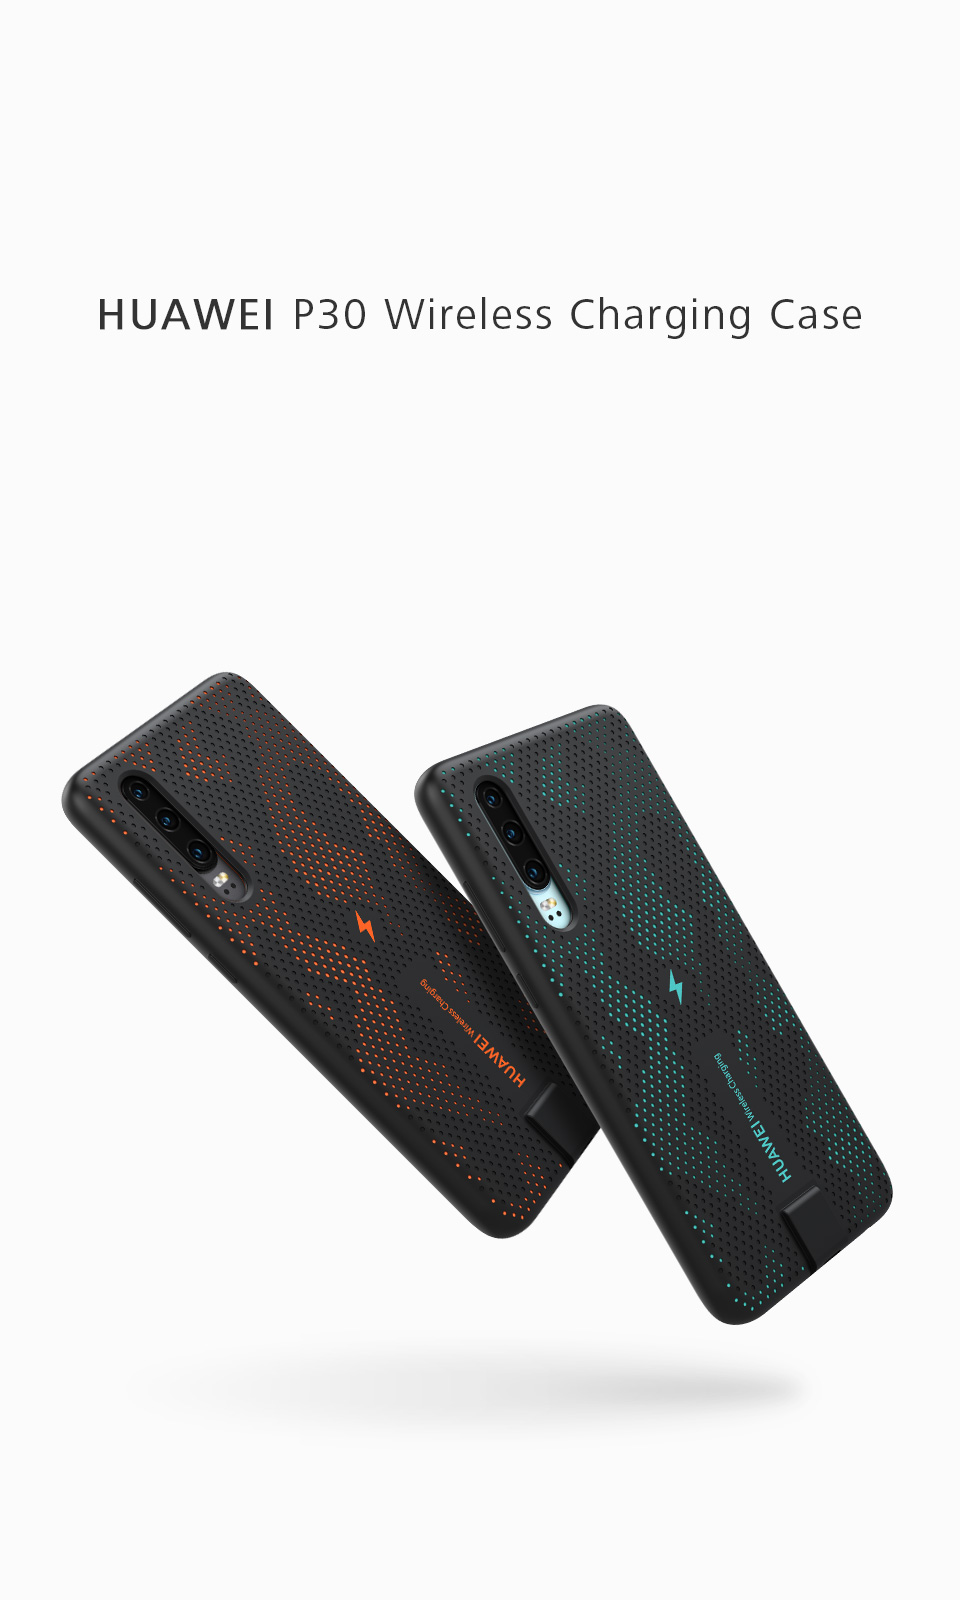 HUAWEI P30 Wireless Charging Case